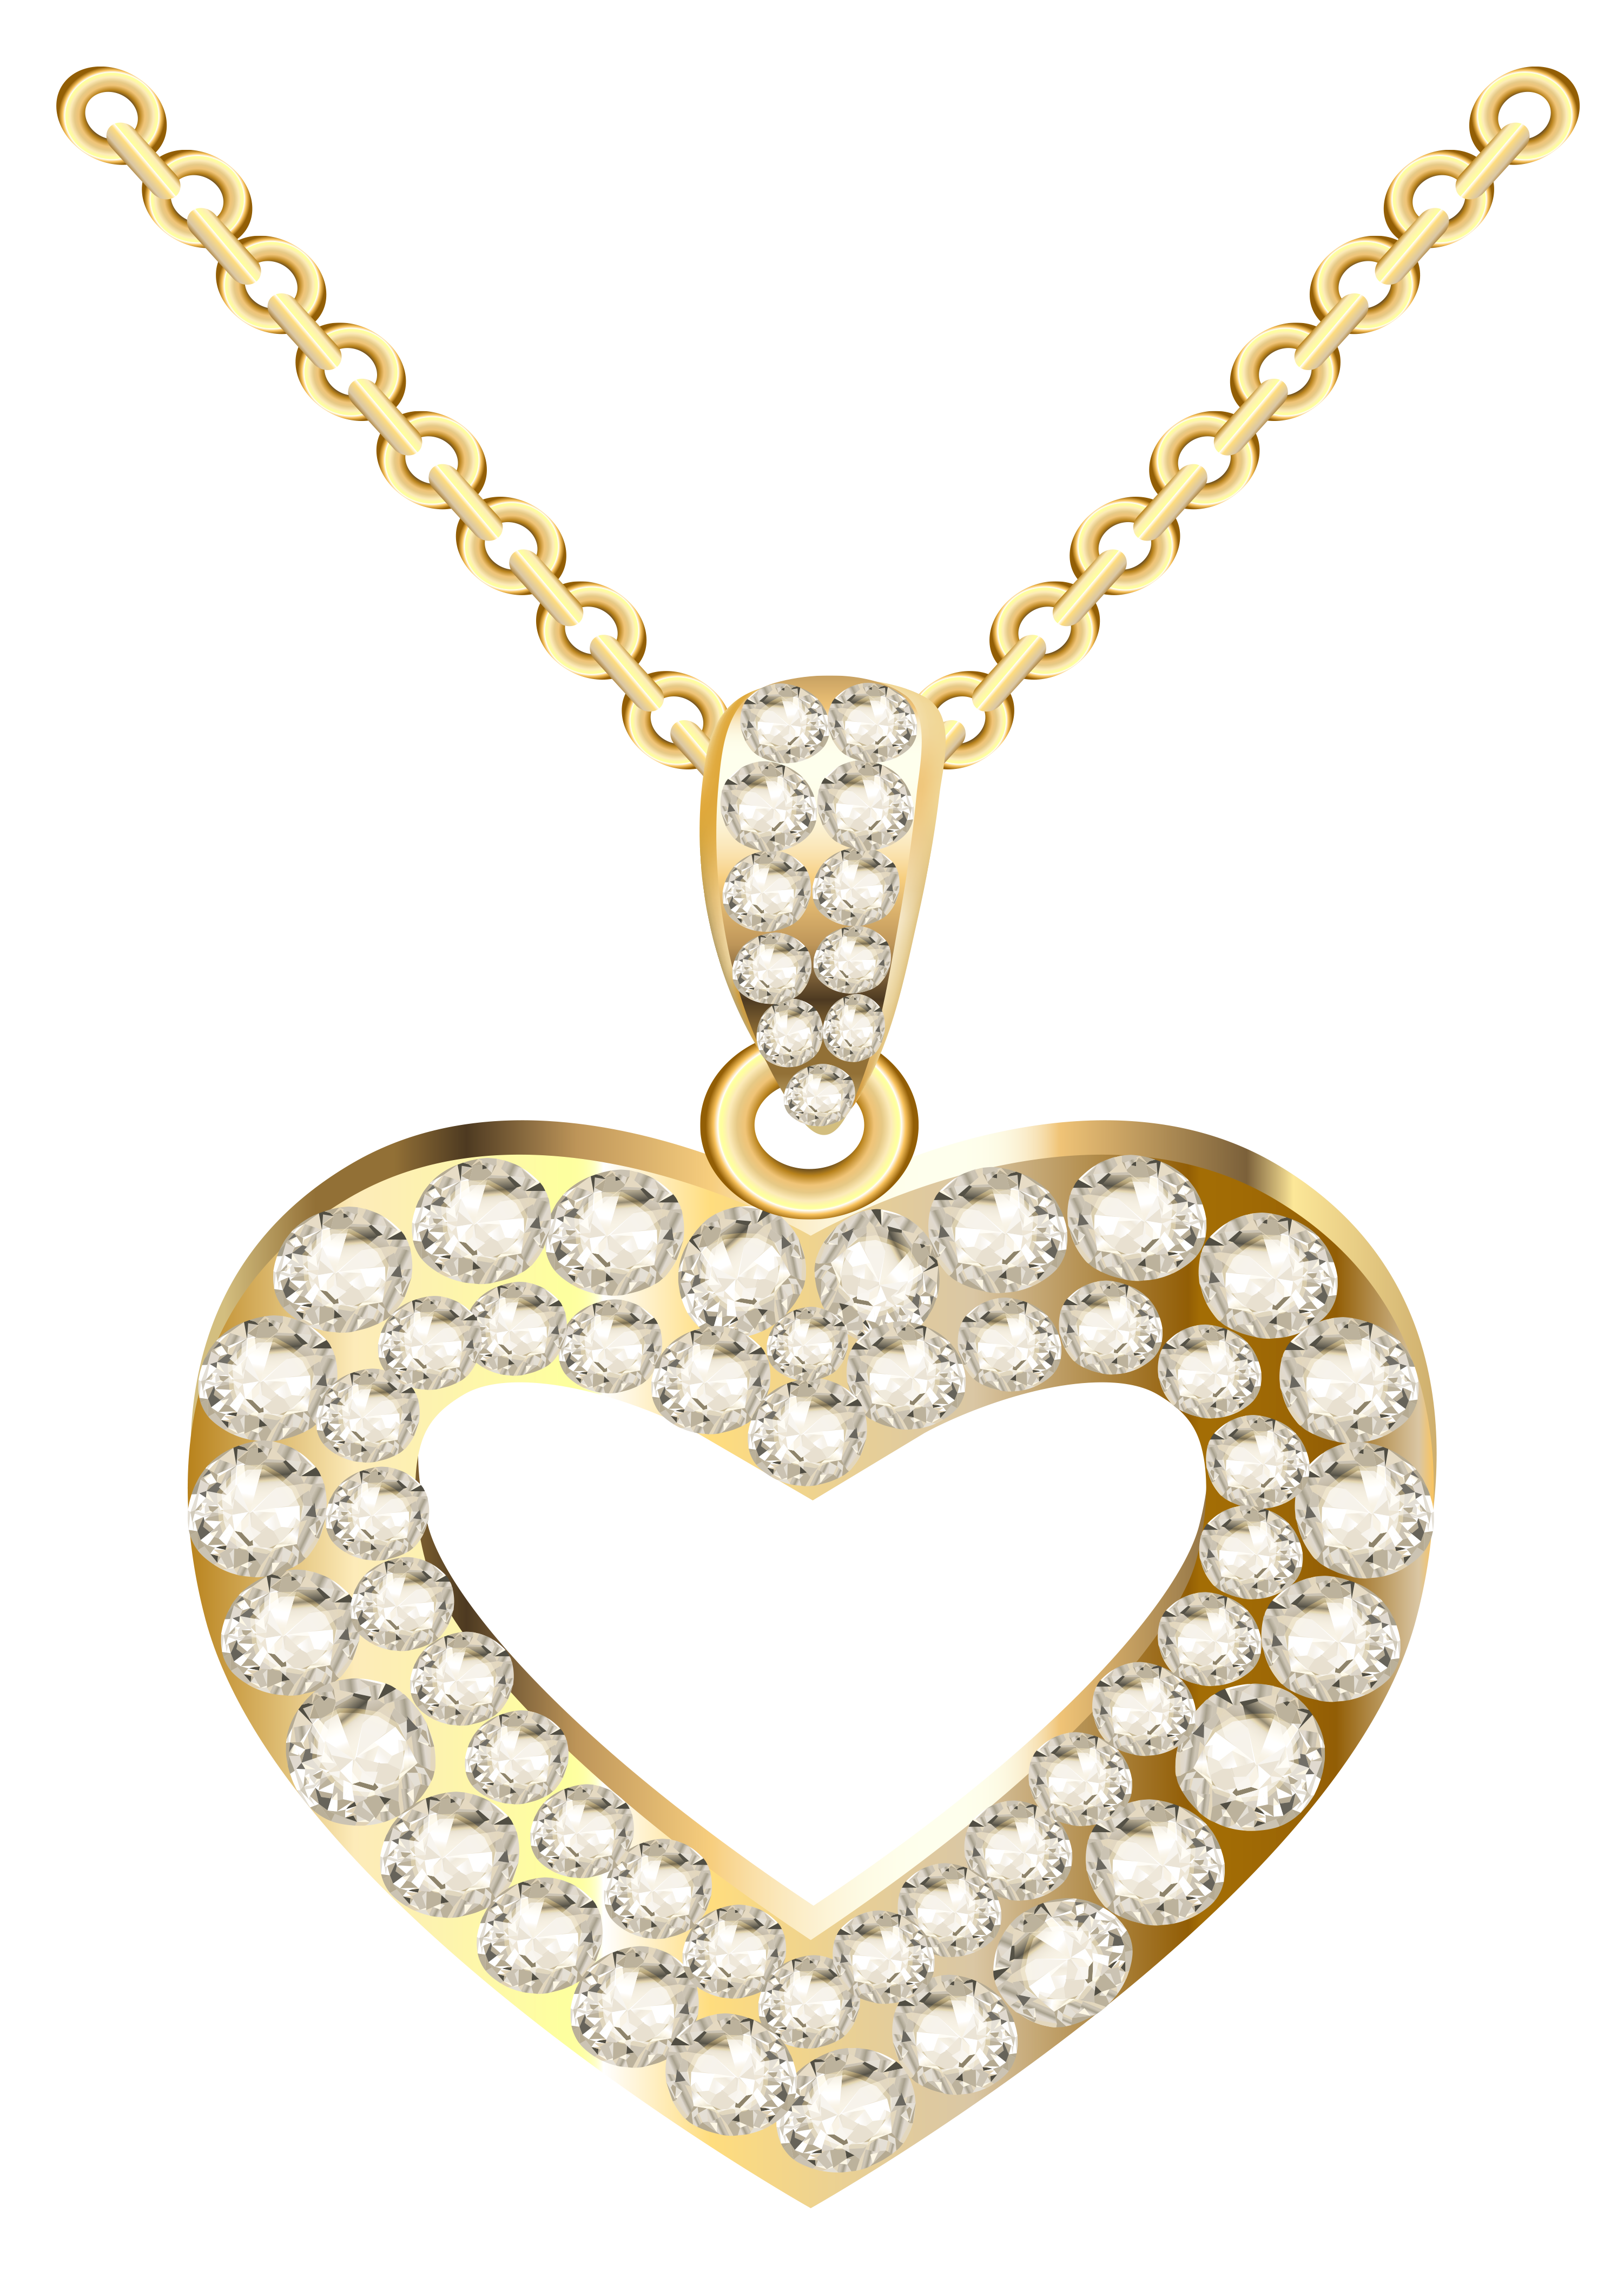 Bling png transparent. Golden heart necklace with